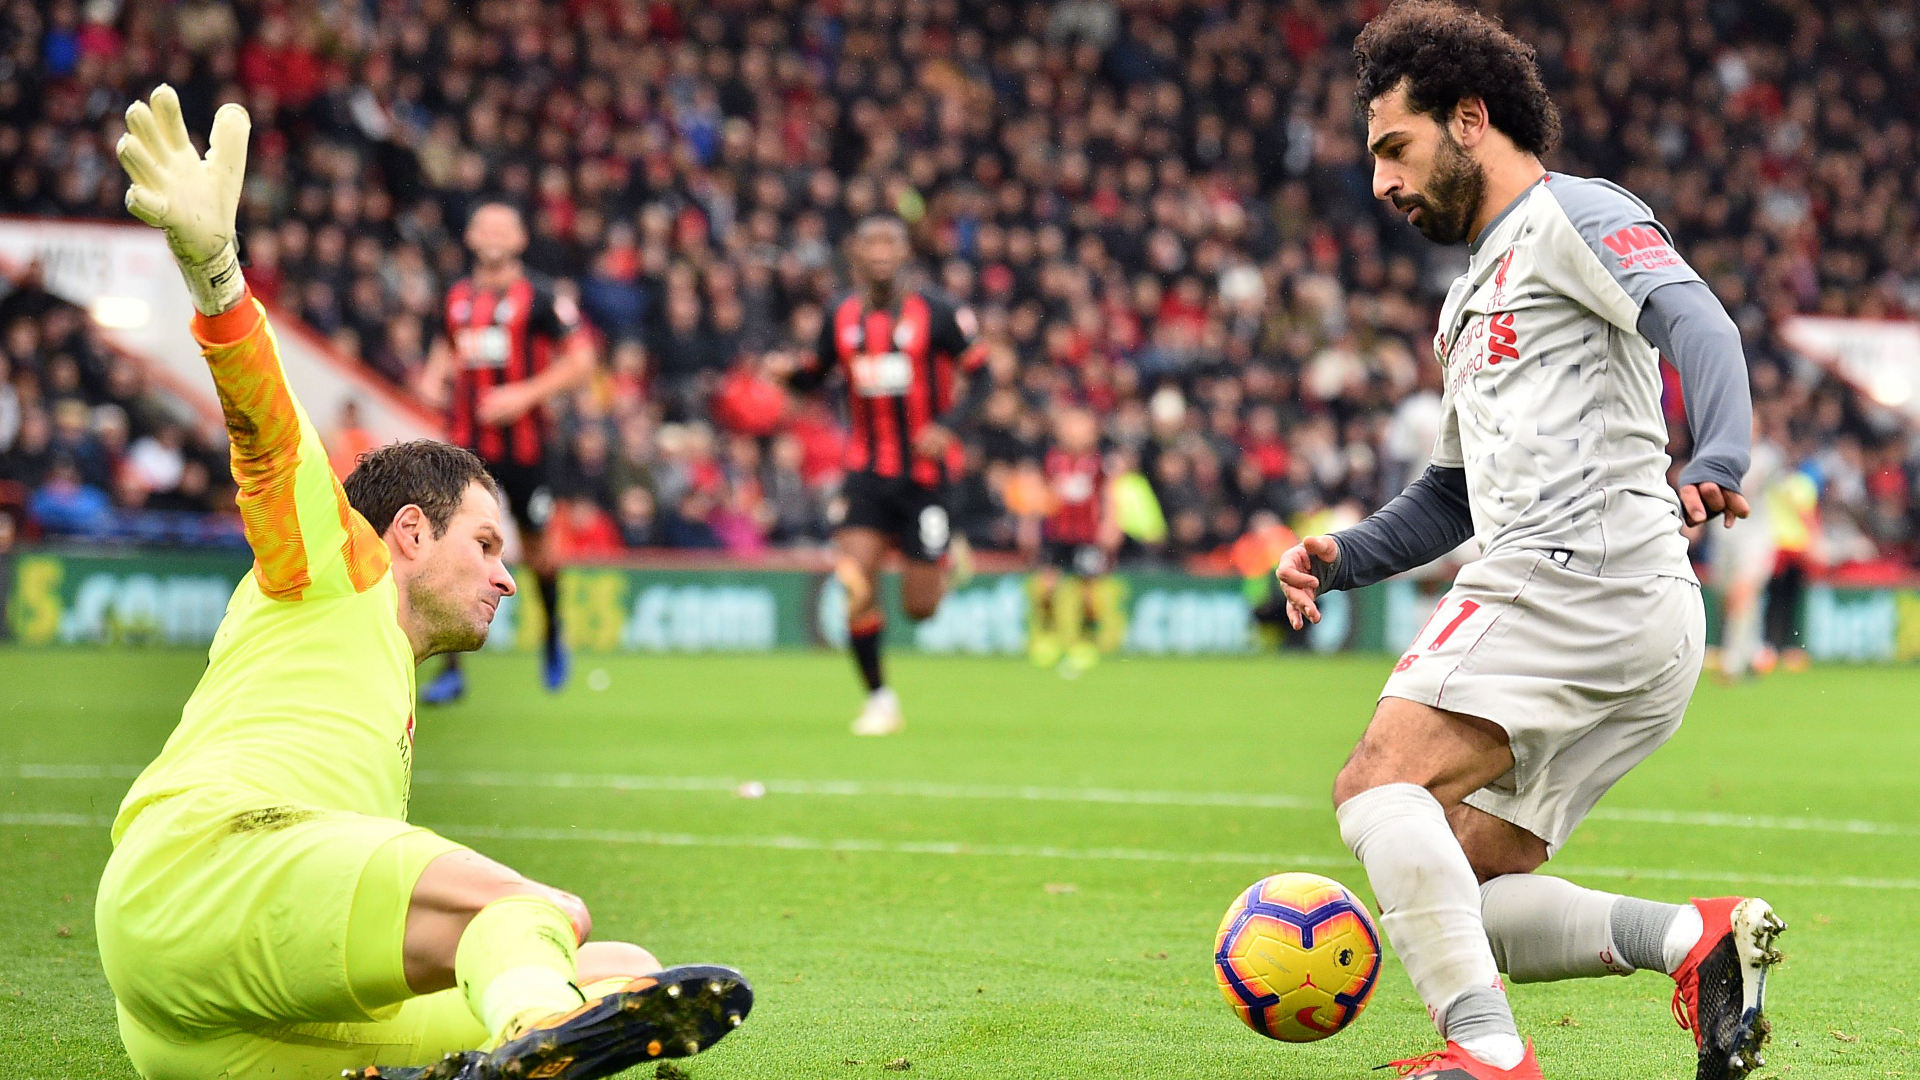 Bournemouth 0-4 Liverpool: Player Ratings - What the media and statistics say